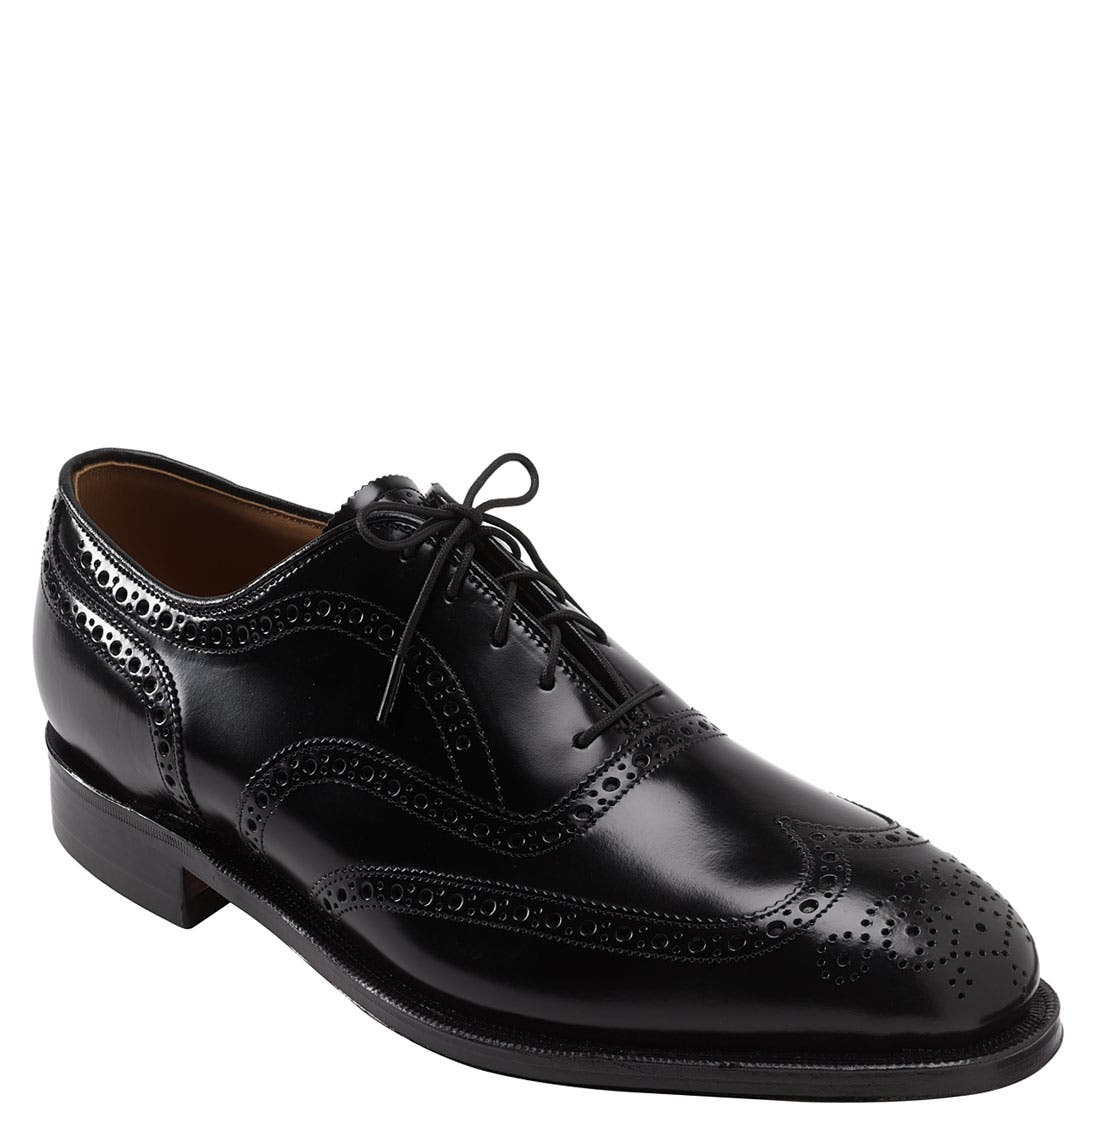 Alternate Image 1 Selected - Johnston & Murphy 'Waverly' Oxford (Online Only)